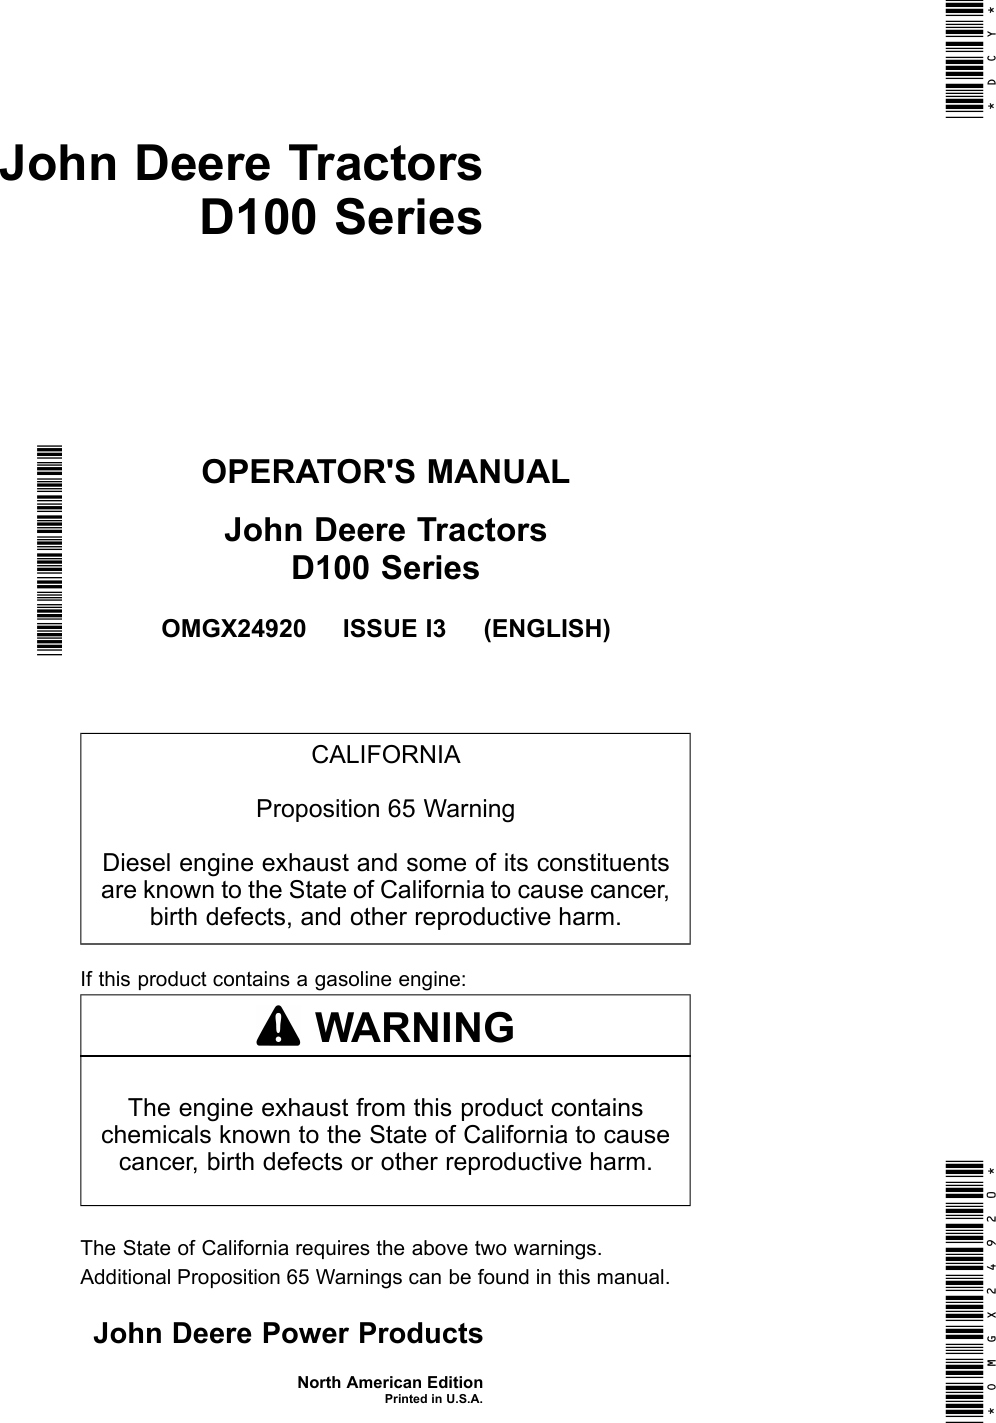 John Deere Products And Services Lawn Mower D100 Users Manual D130 Belt Diagram Auto Cars Price Release